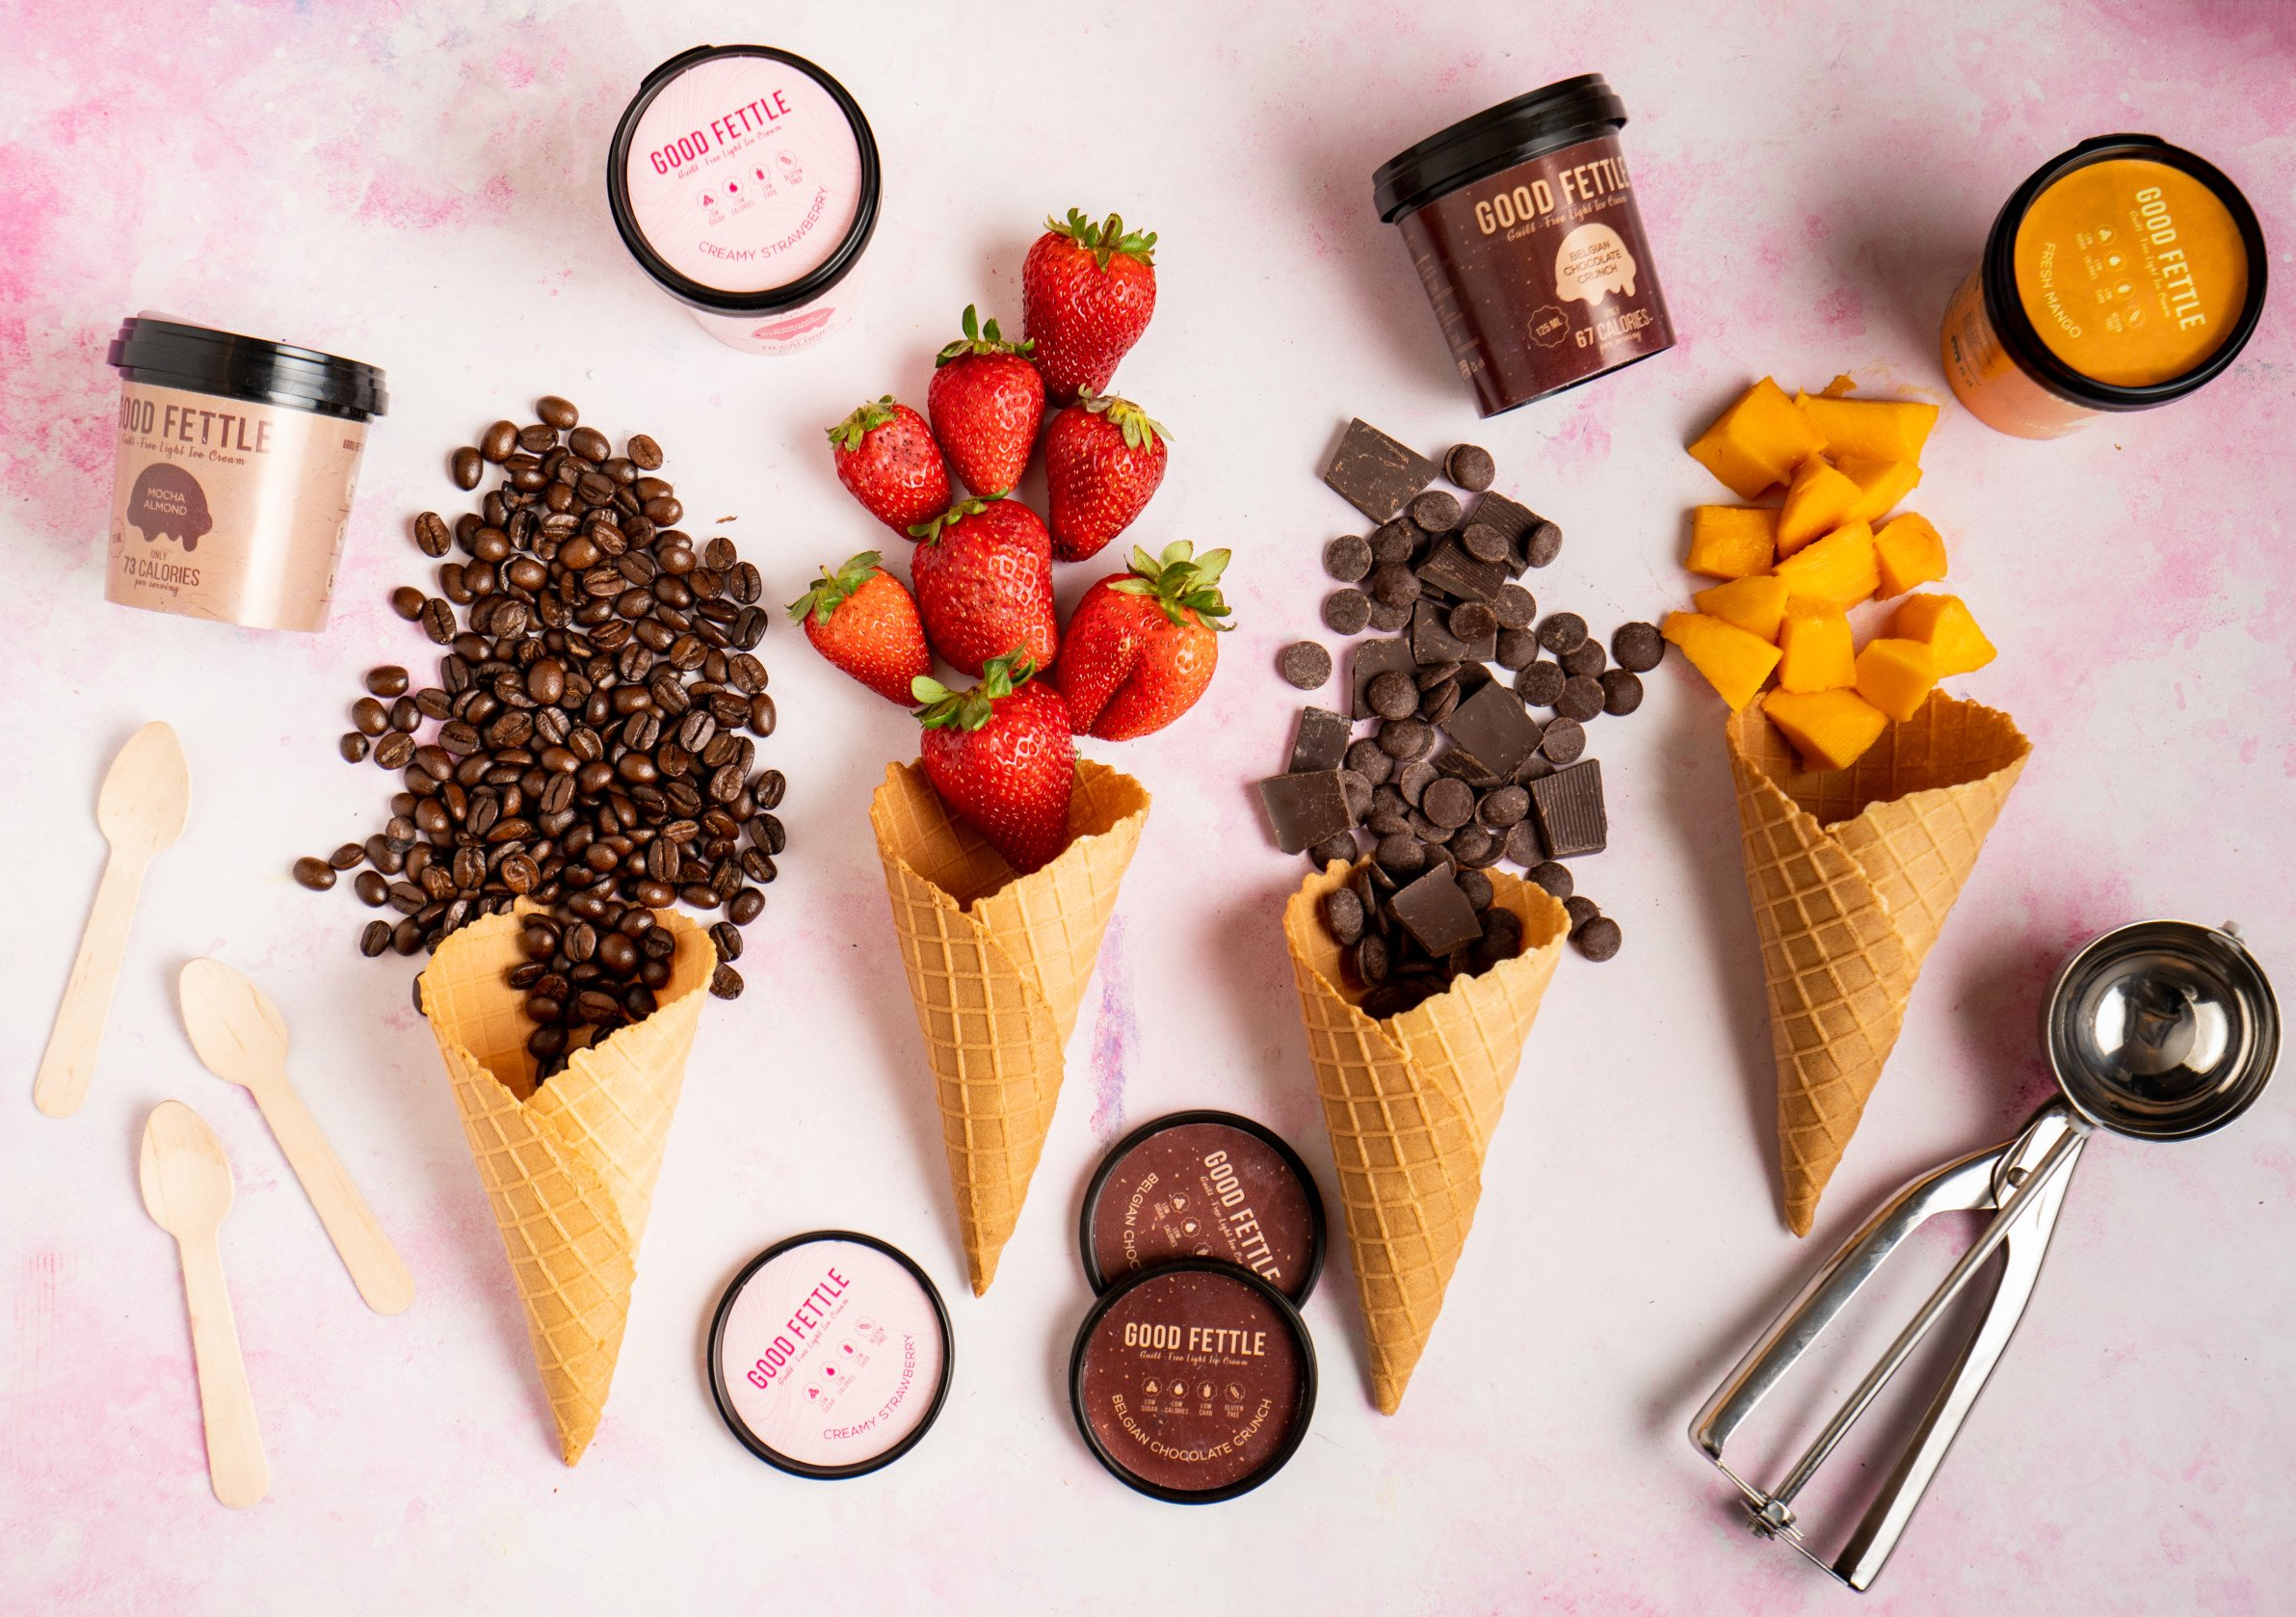 Craving Ice Cream But Counting Those Calories? Good Fettle Launches Asia's first Low Calorie Healthy Ice Cream